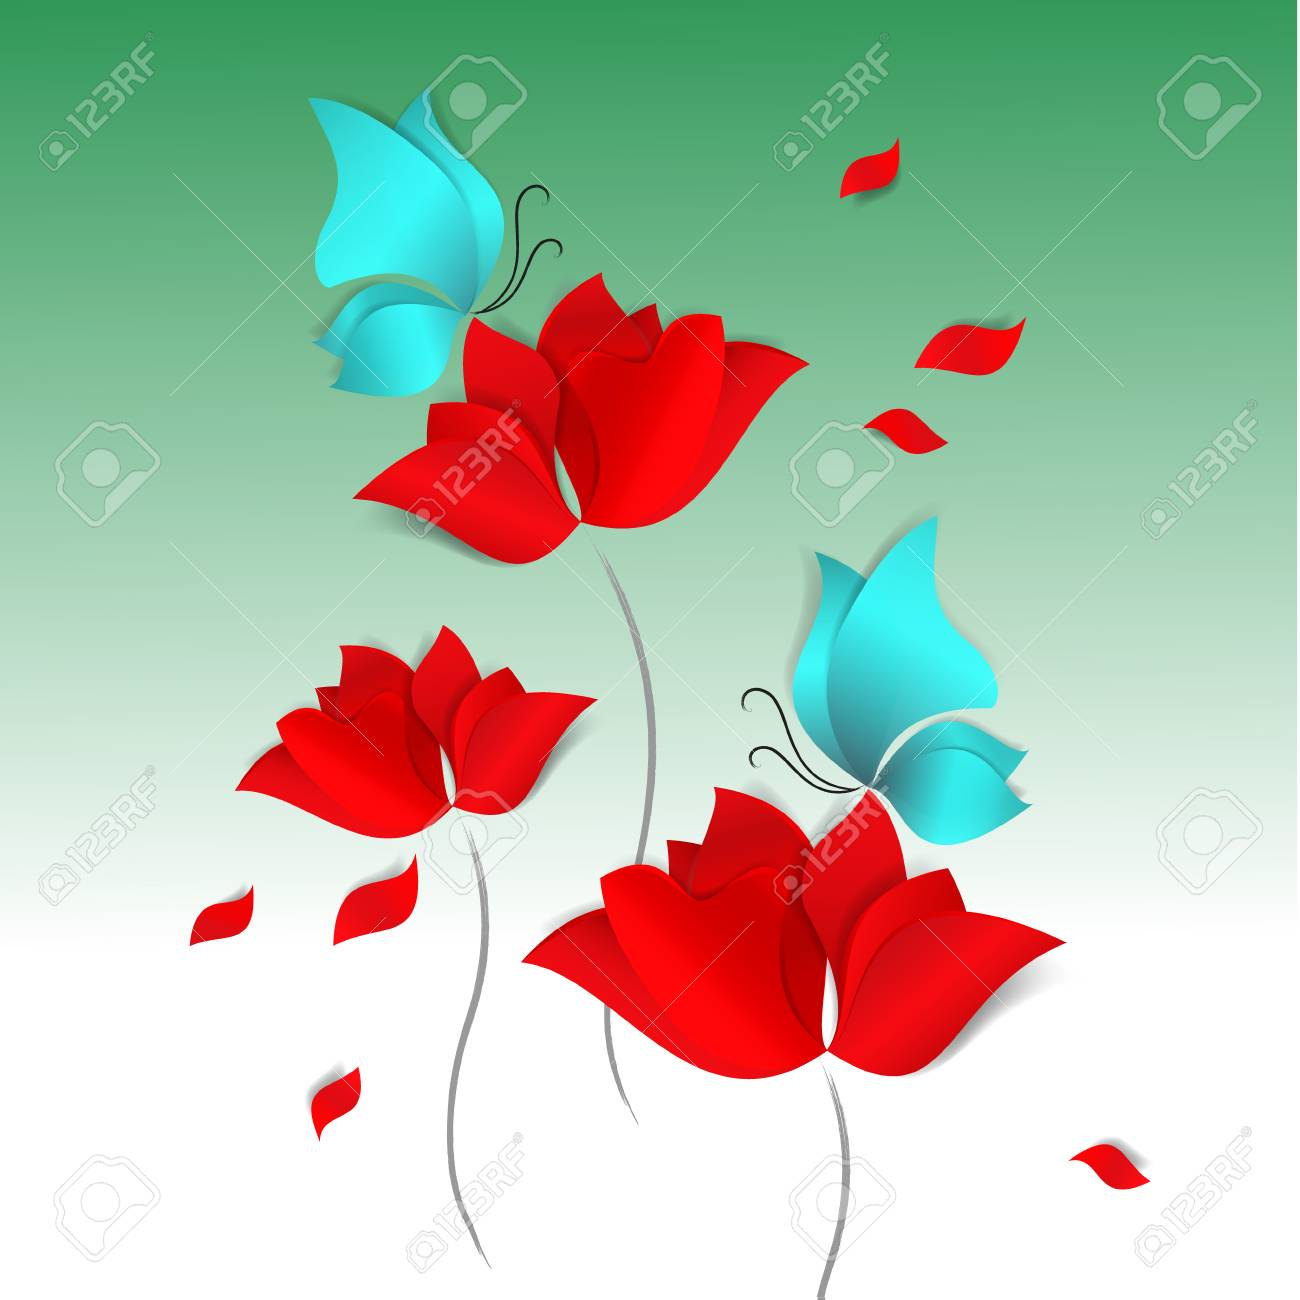 Spring Paper Cut Style Card On Green Background Red Flowers